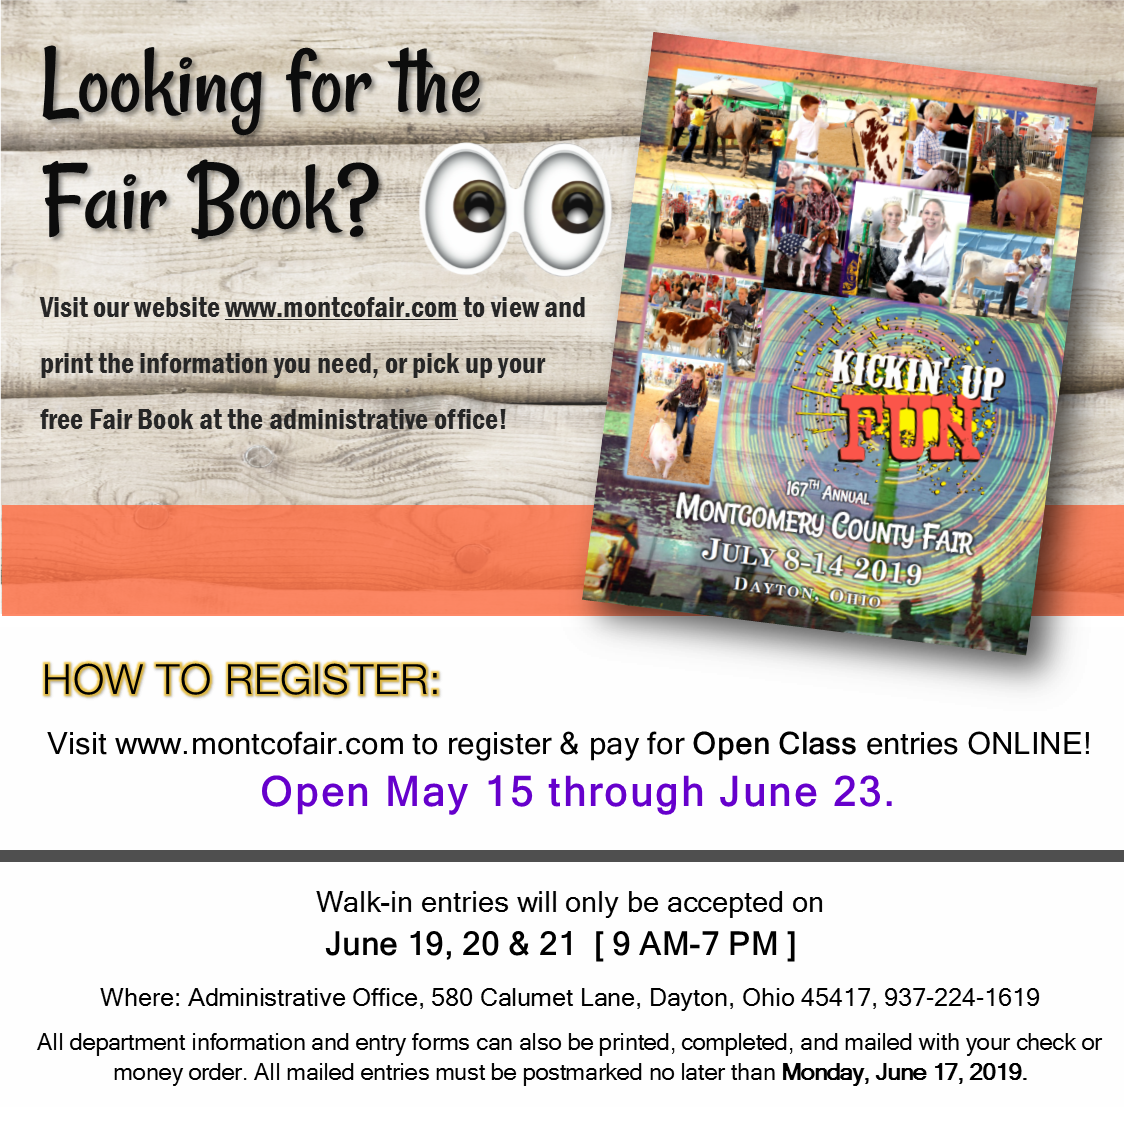 Looking for the Fair Book